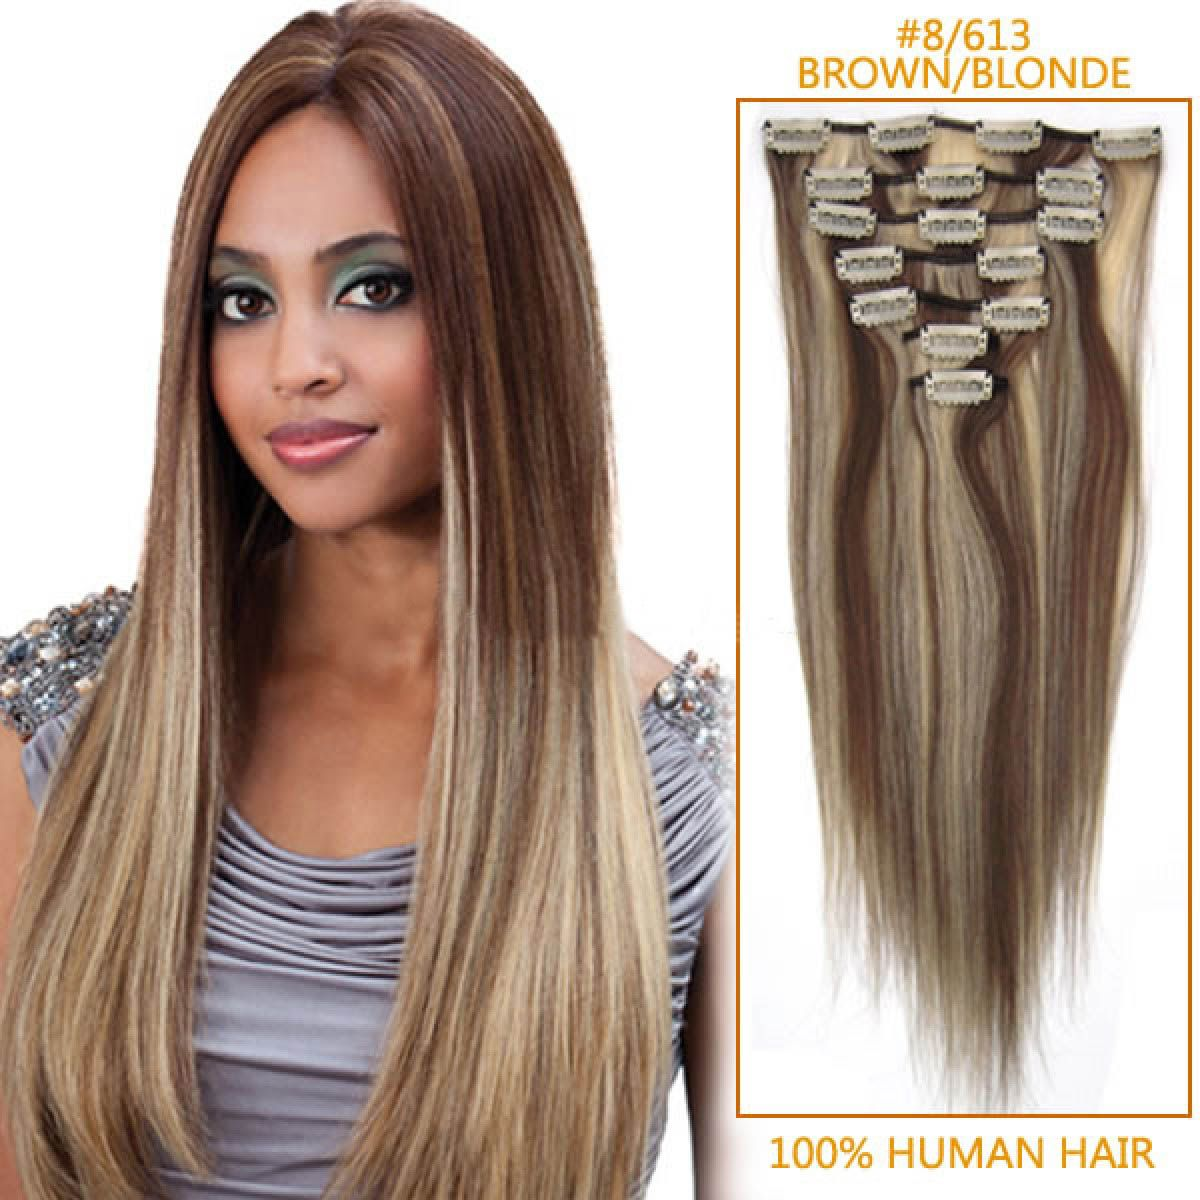 32 inch long straight clip in real human hair extensions 8613 11 32 inch long straight clip in real human hair extensions 8613 11 pieces pmusecretfo Choice Image